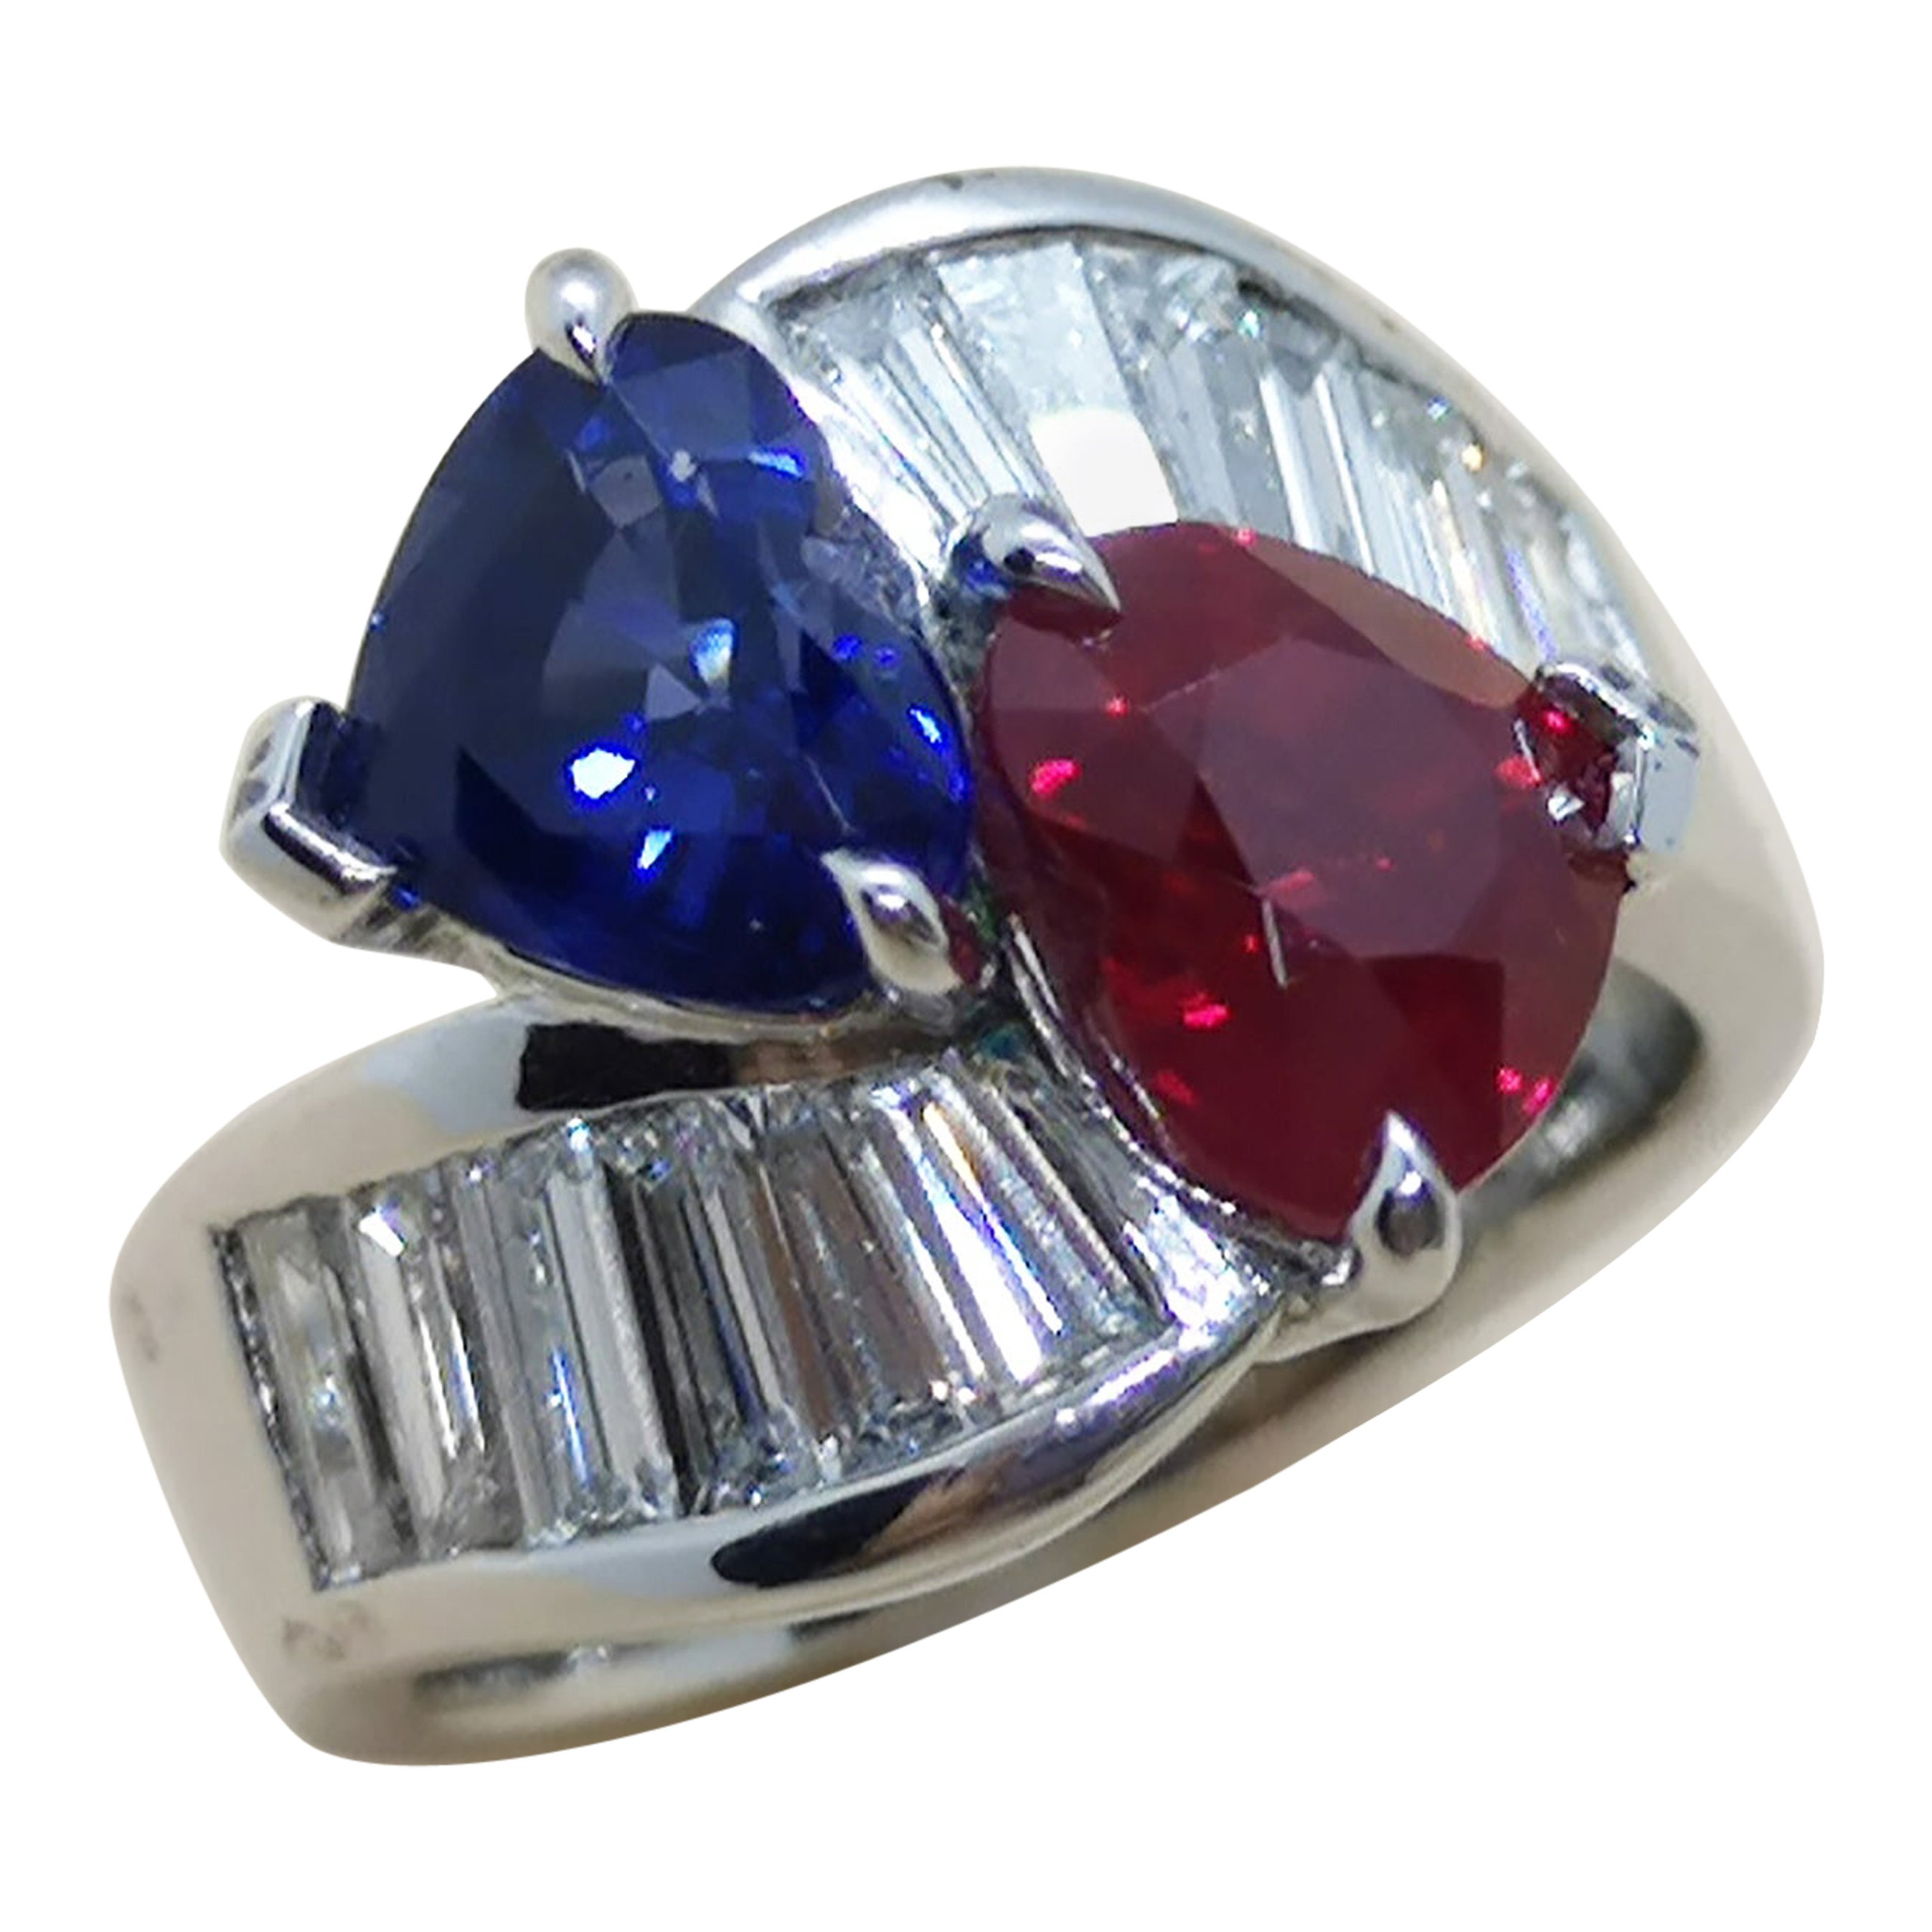 Heart Shape Ruby and Sapphire with Diamond Ring Set in Platinum 950 Settings